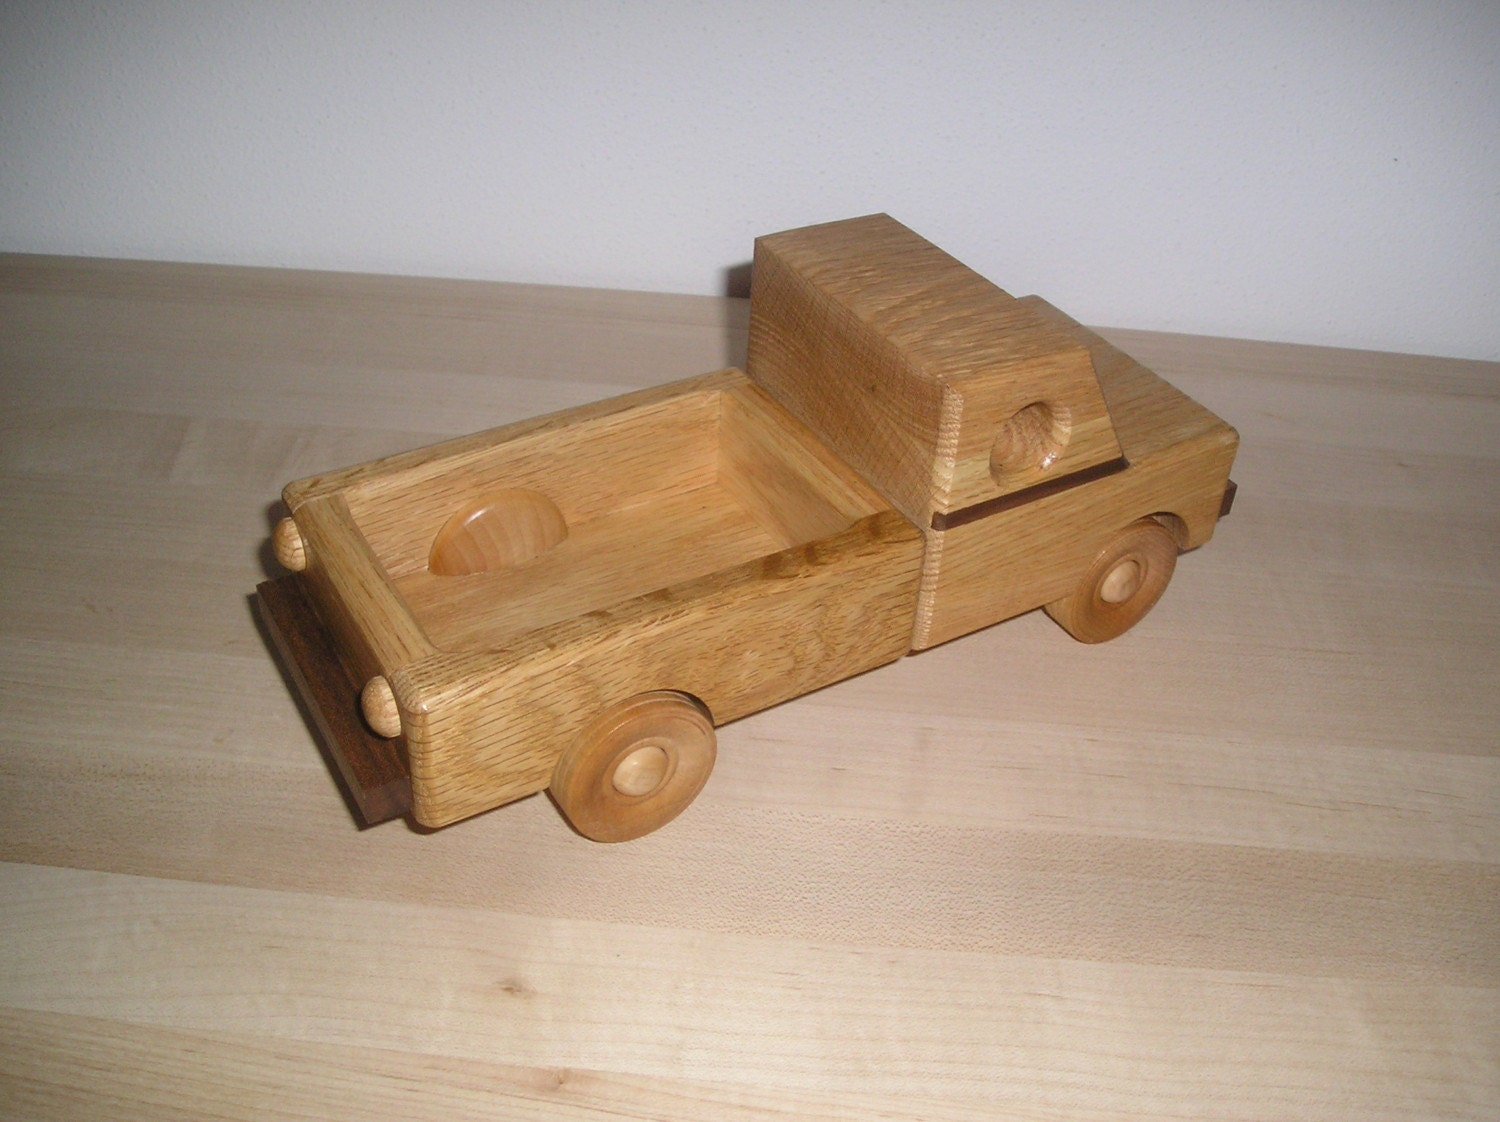 Wooden Toy Pickup Truck | www.galleryhip.com - The Hippest ...